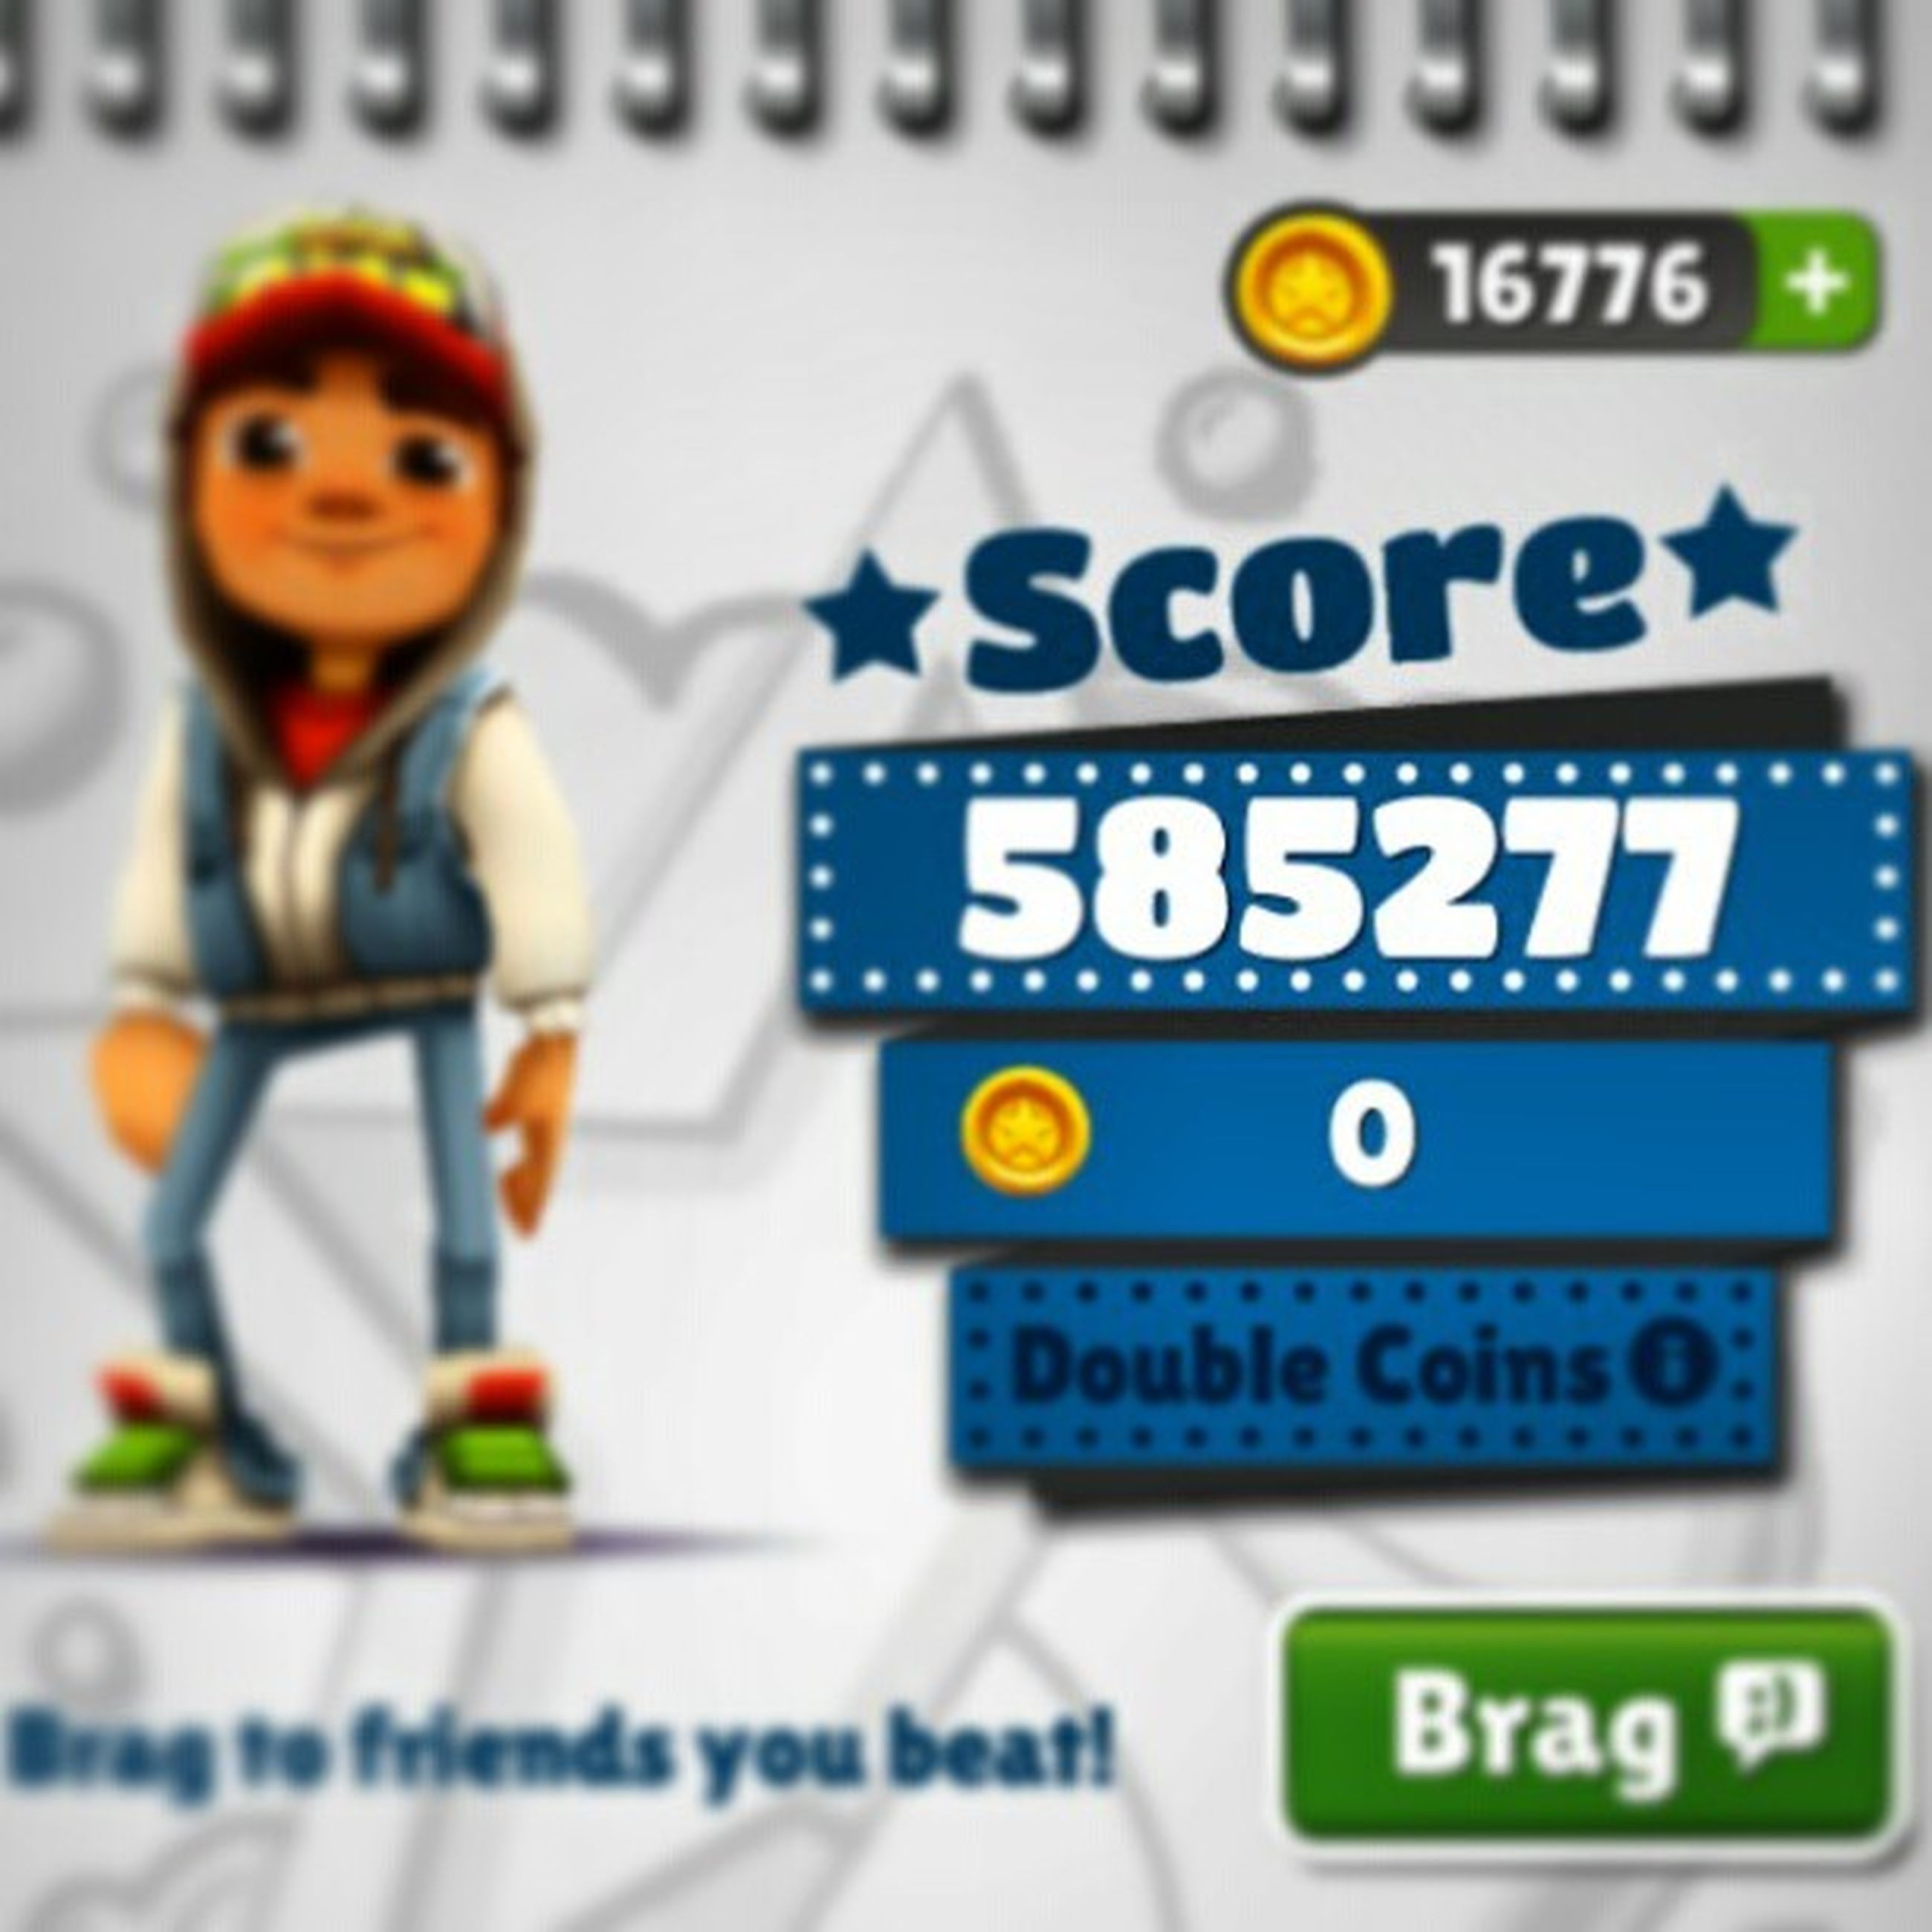 Just a decent high score anyone got higher i eyeem for 979 the beat number